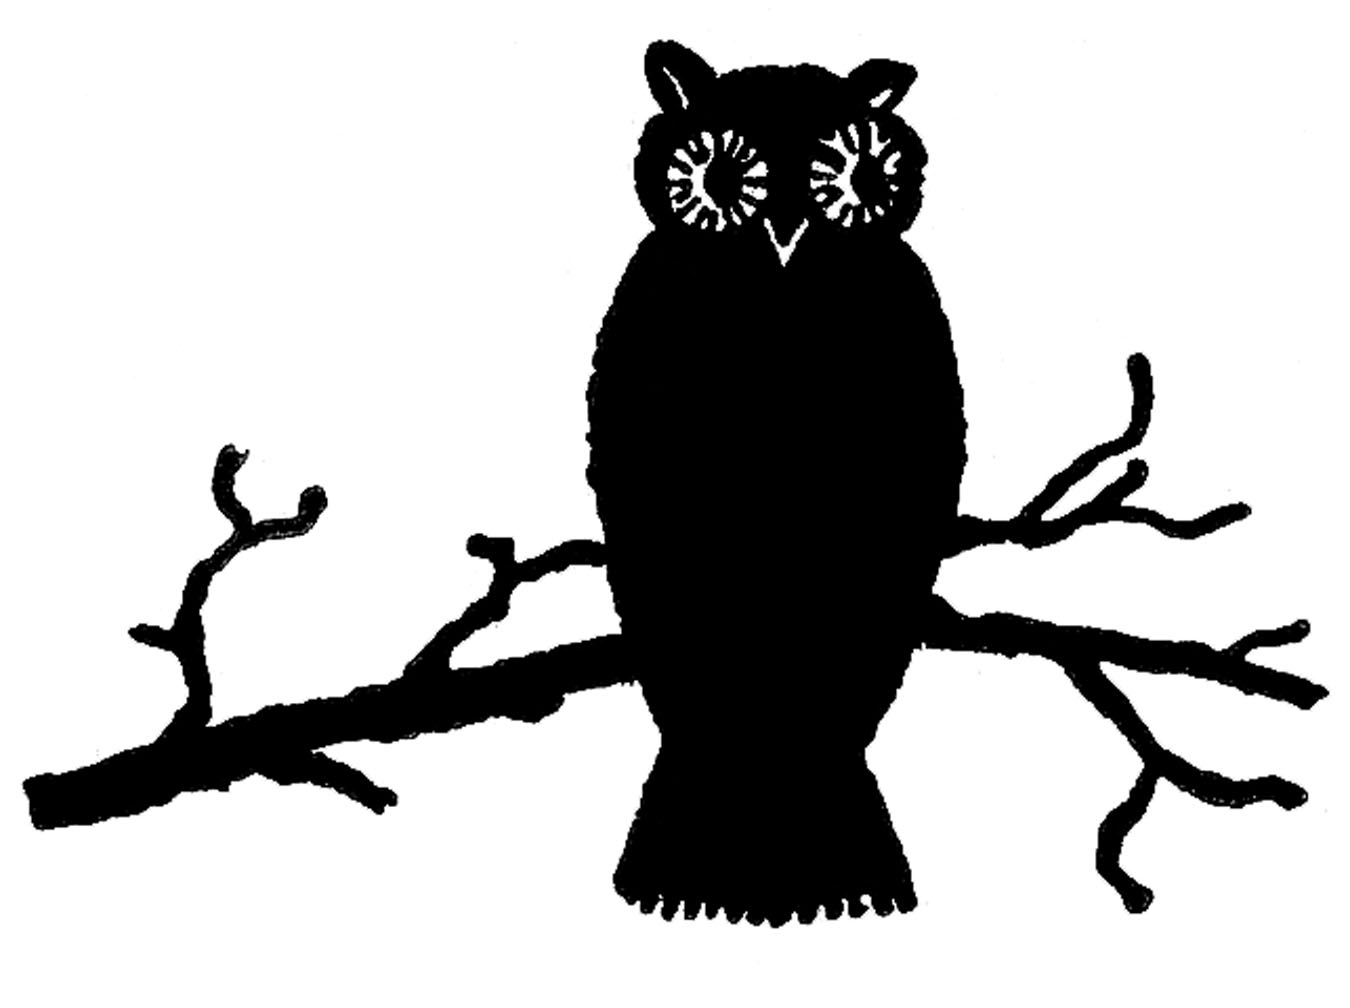 Owl clip art silhouette. Vintage halloween cute the